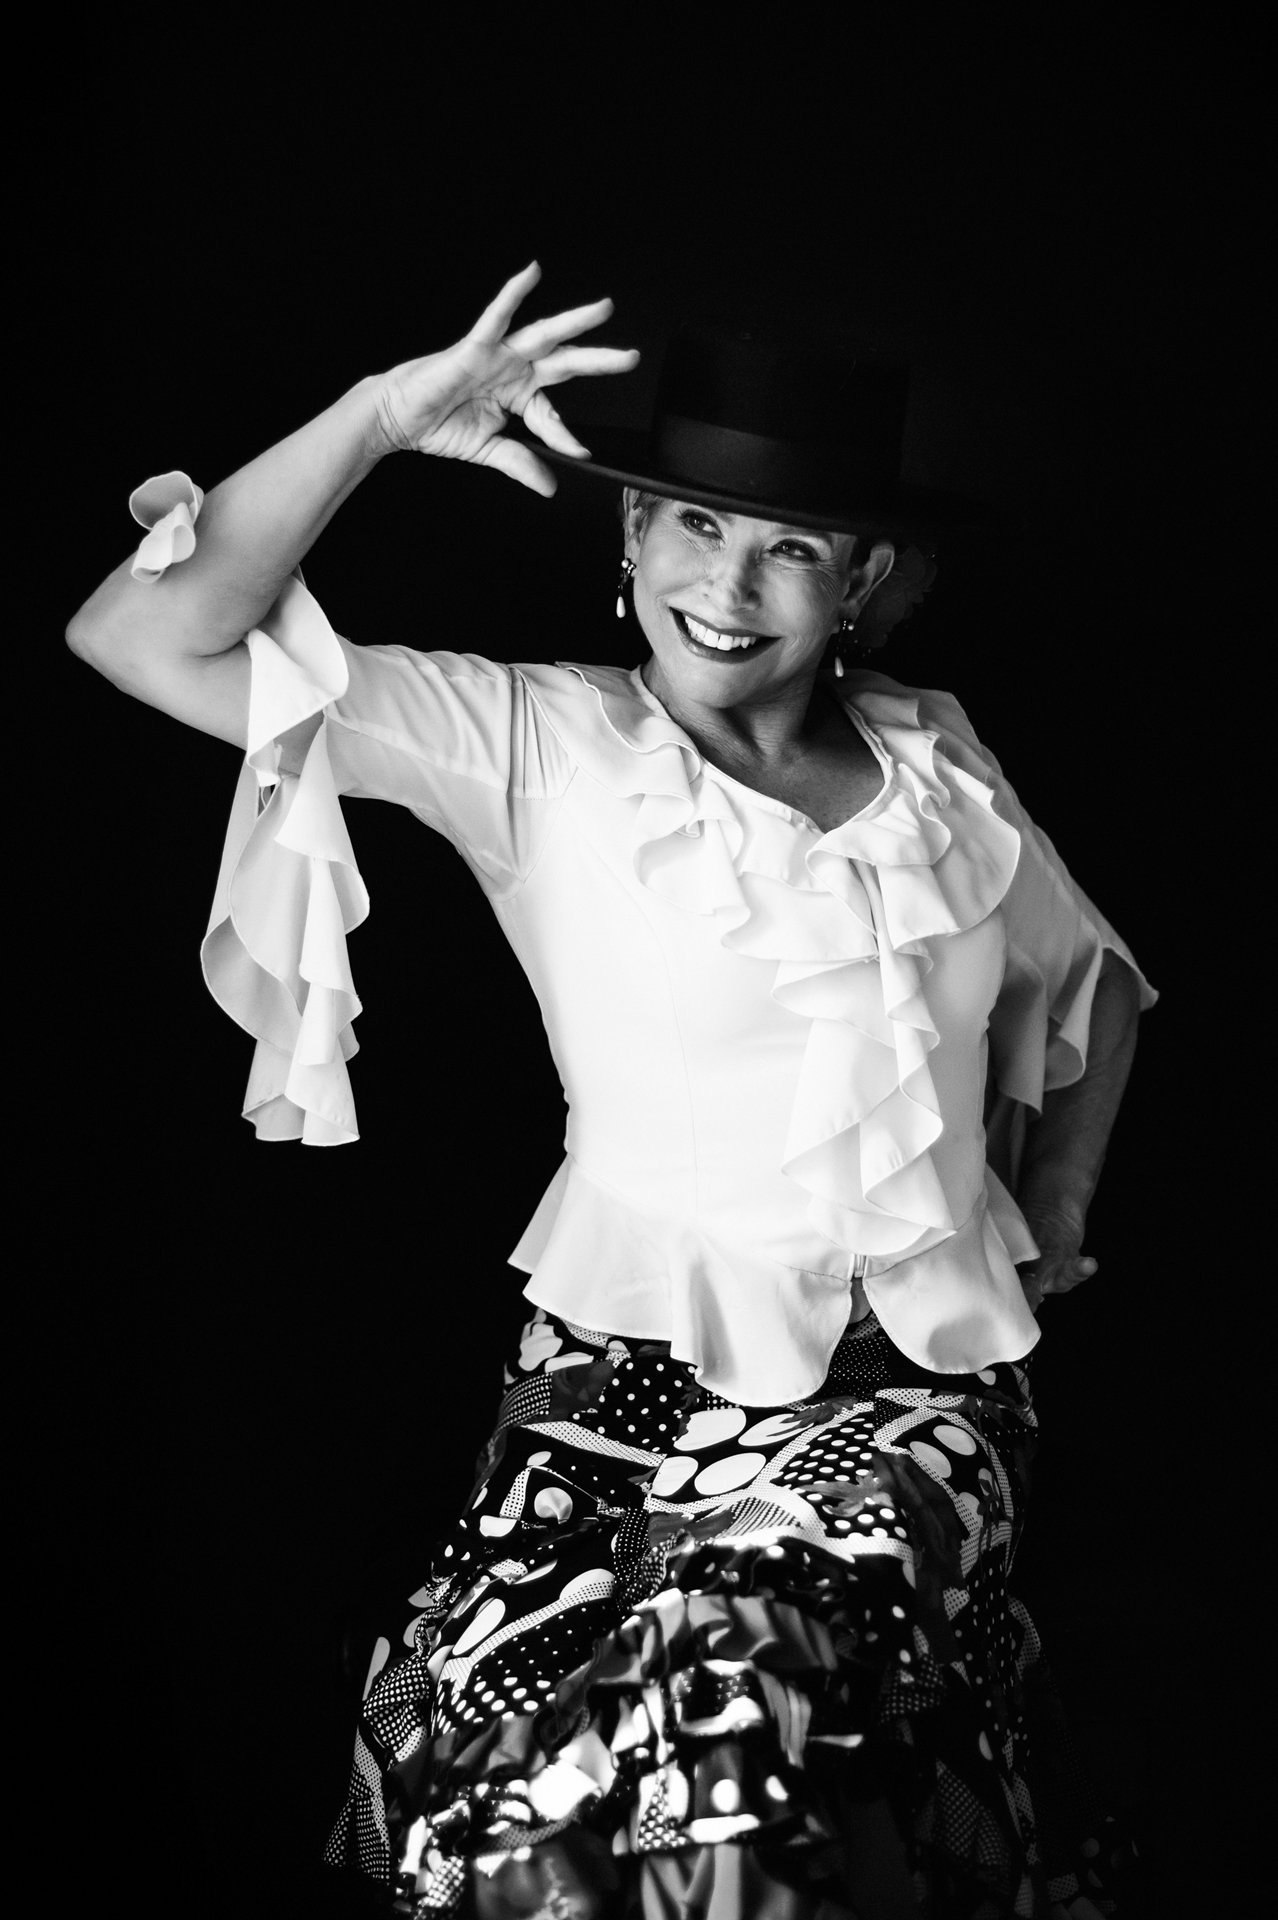 Tommy Xing Los Angeles Orange County Dance Photography 18.jpg